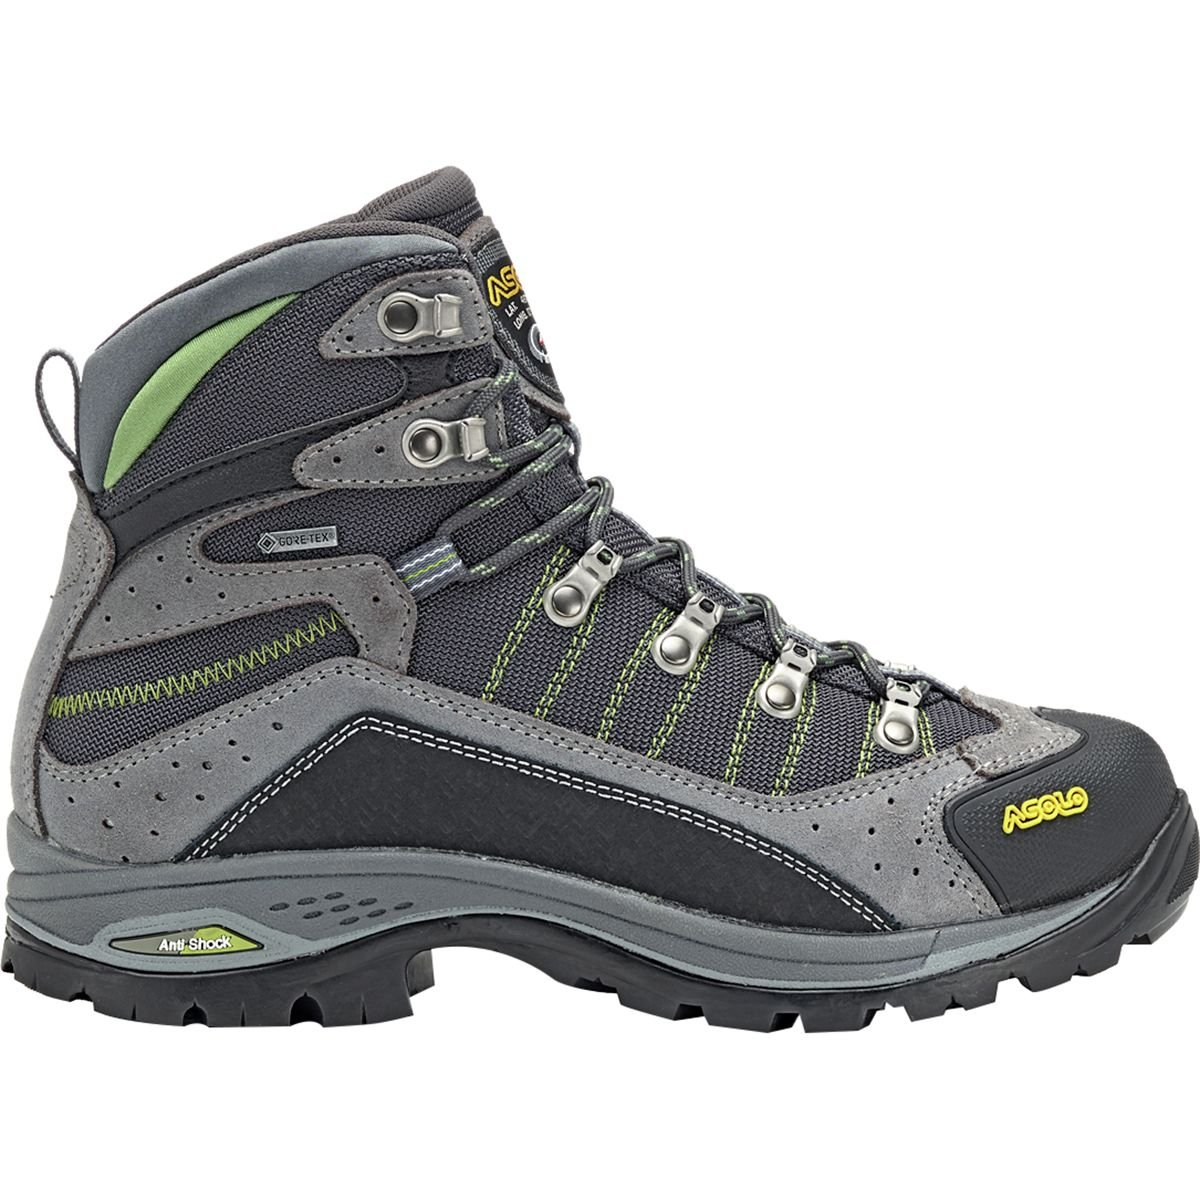 3a3b760b1ca Amazon.com | Asolo Drifter GV Evo Boot - Women's Donkey/English Ivy ...